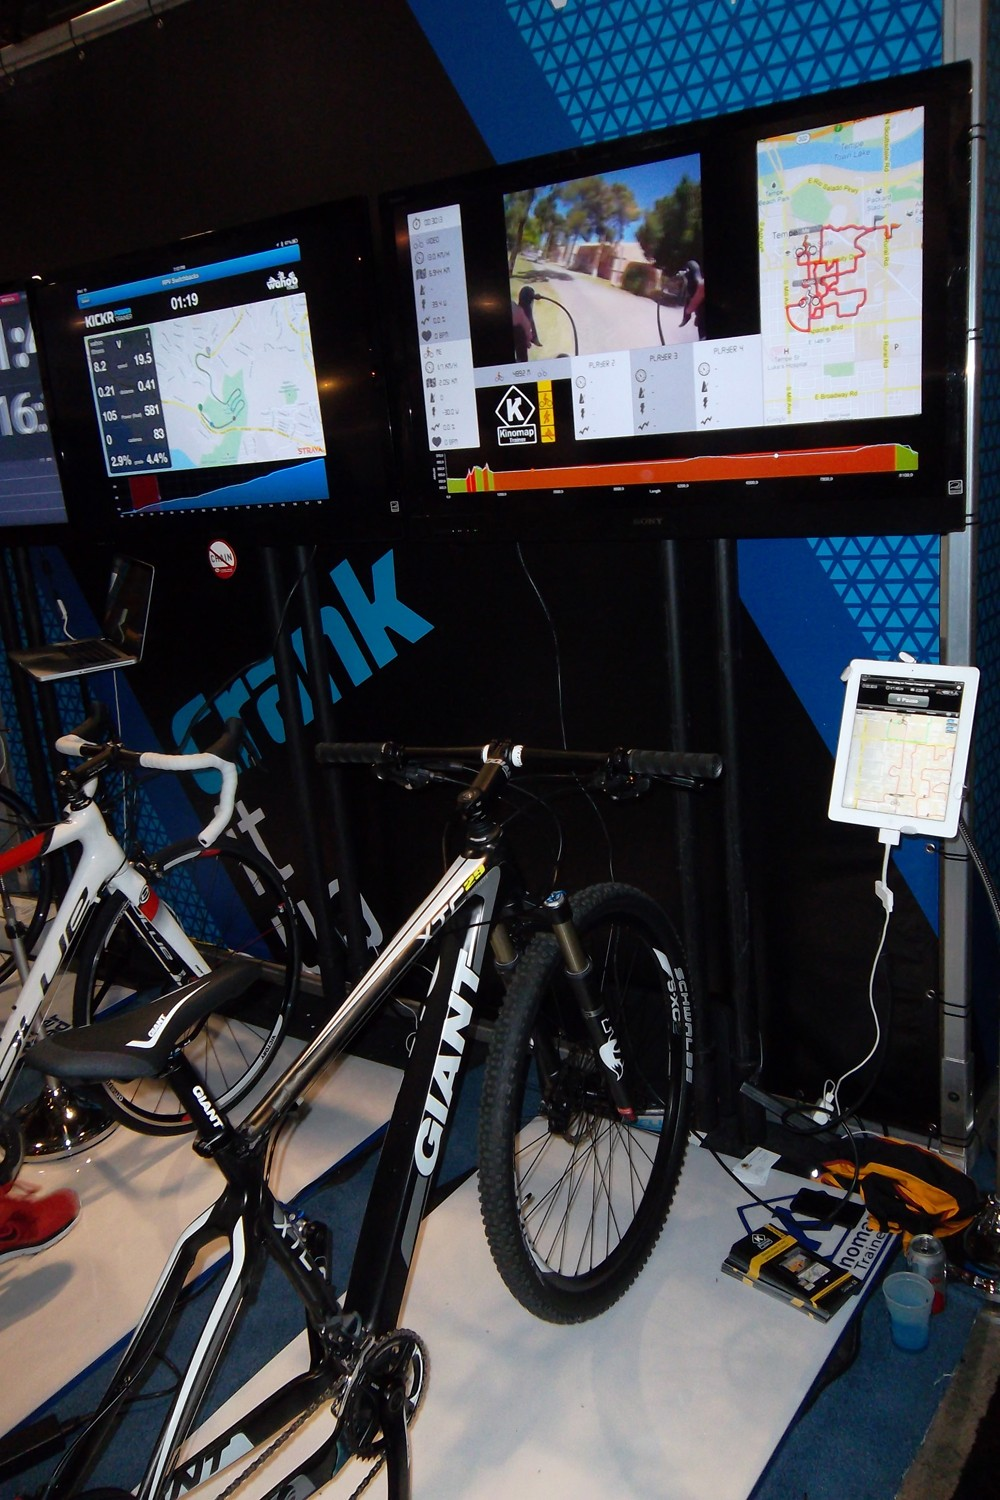 The Tacx system works on ANT+, and can connect wirelessly to your power meter as well as the TV screen as